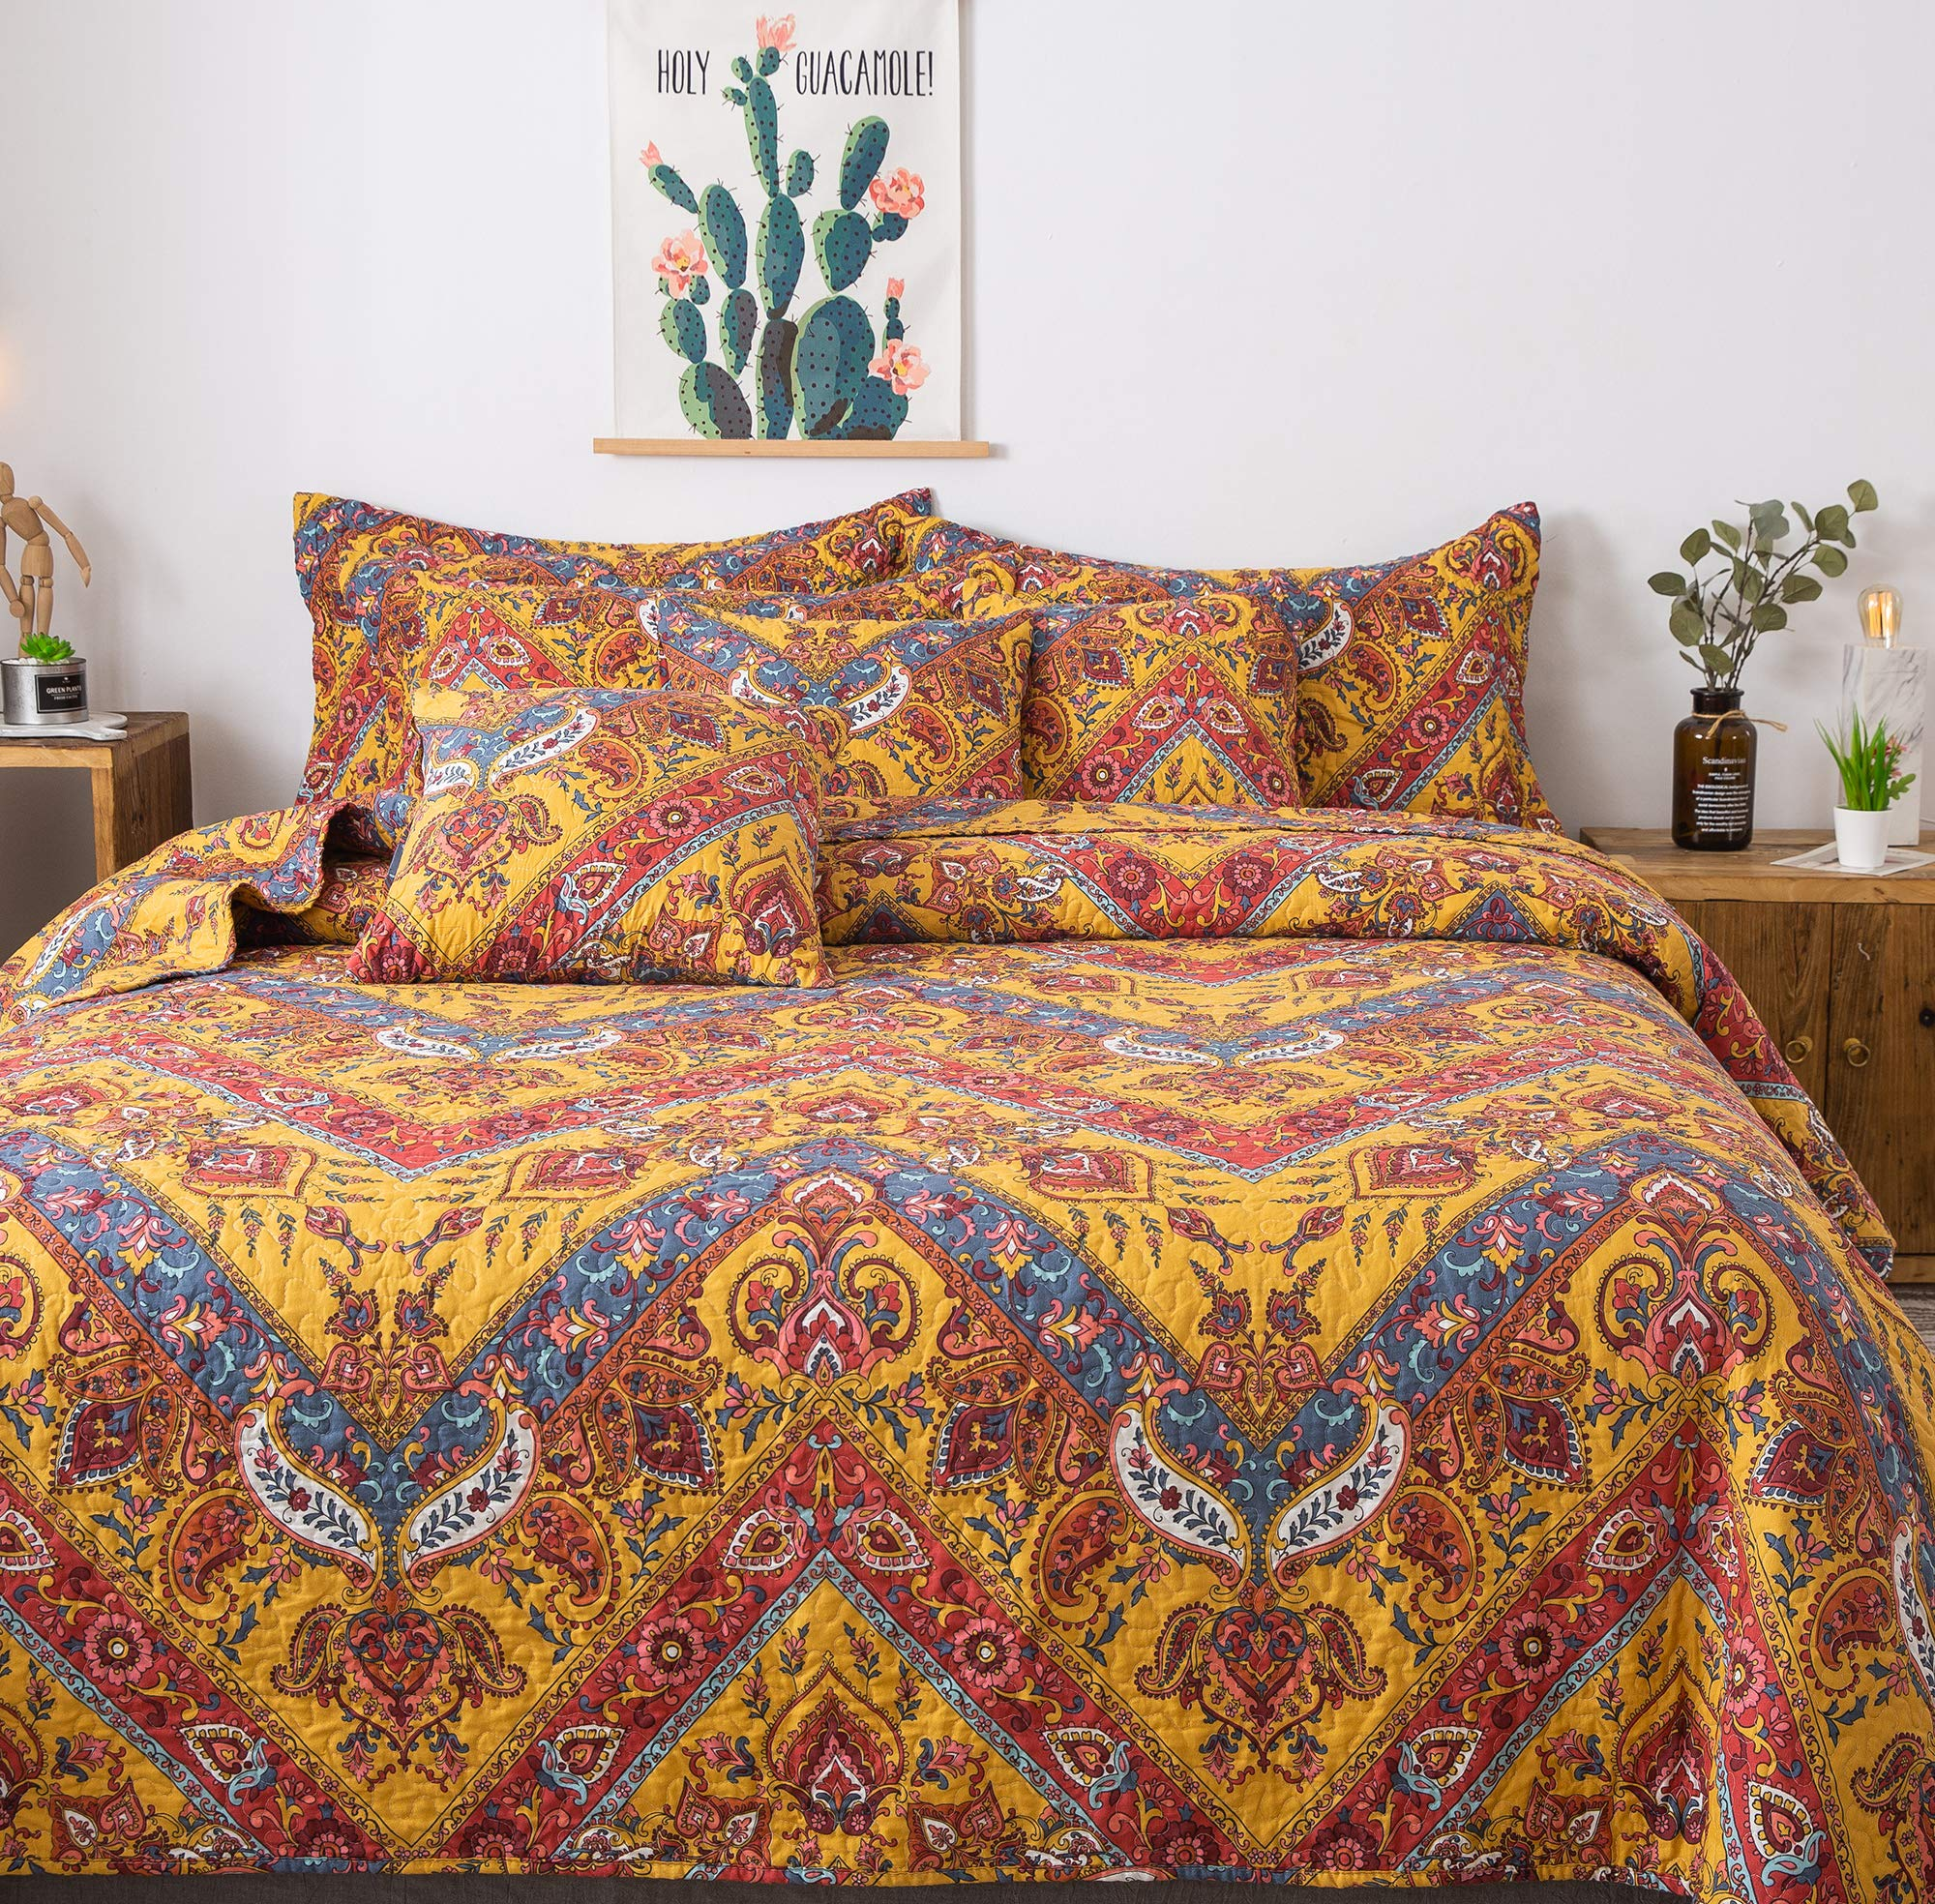 Tache Hanging Gardens Boho Chic Exotic Yellow Red Blue - Floral Colorful Paisley Chevron Reversible Matelassé Bedspread Coverlet - 3 Piece Set - King